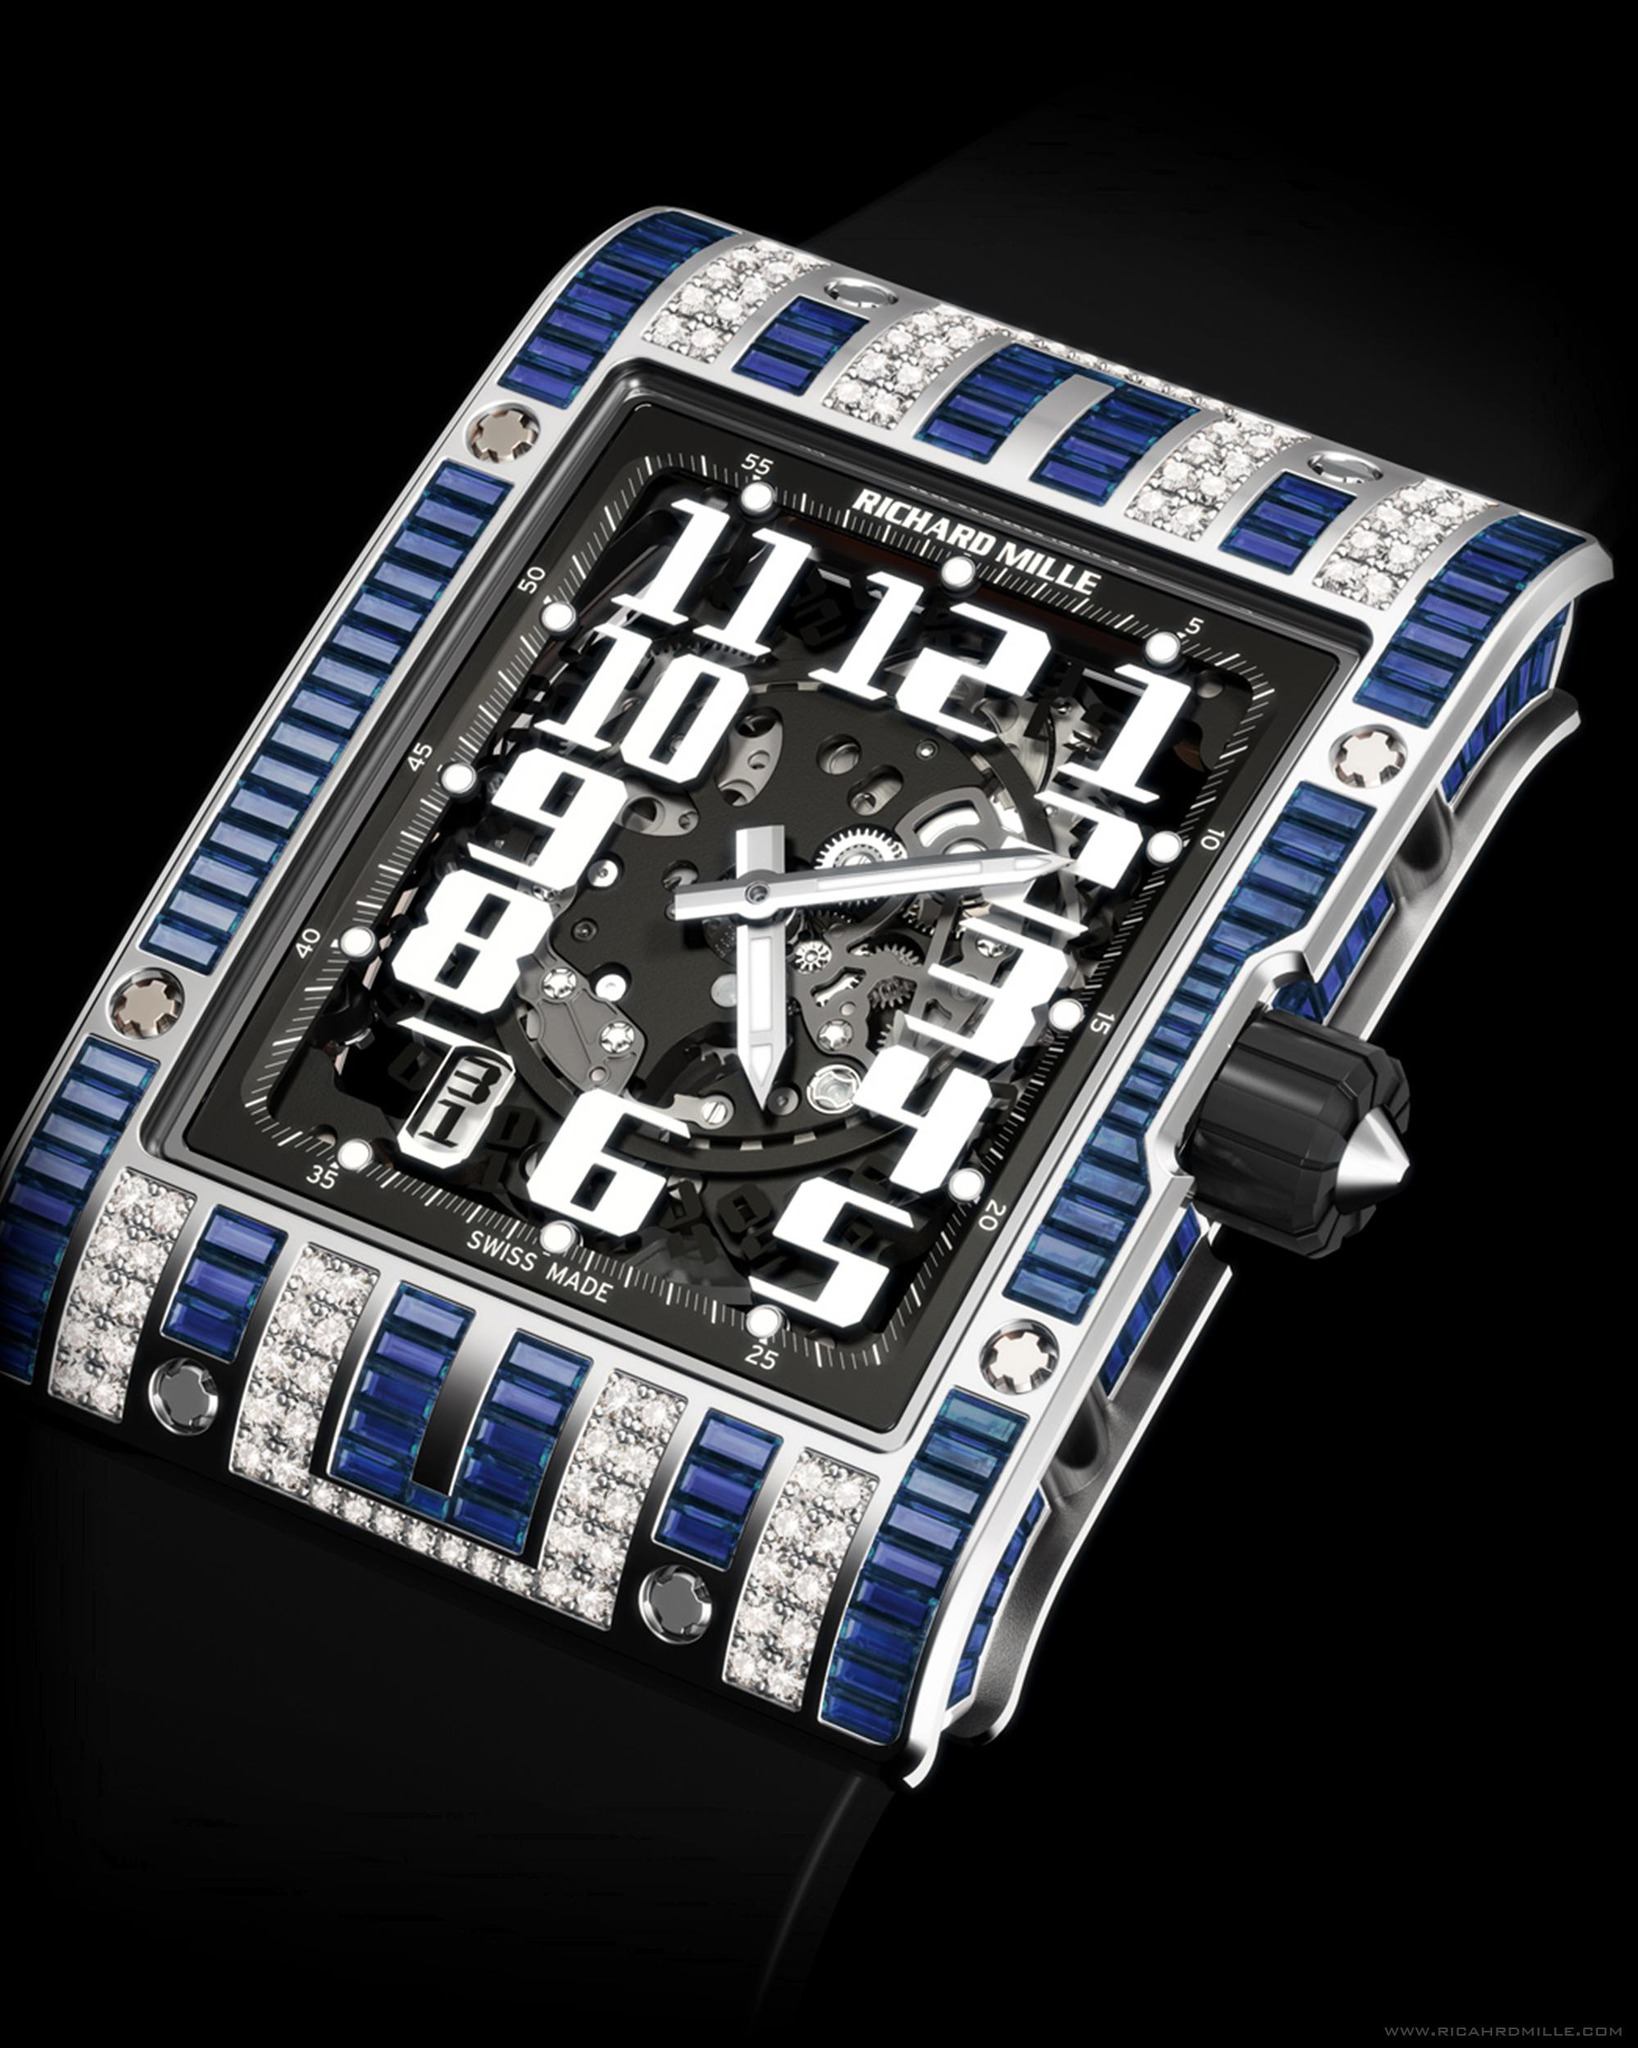 Replica Richard Mille RM 016 Automatic Ali Bin Ali White Gold Watch